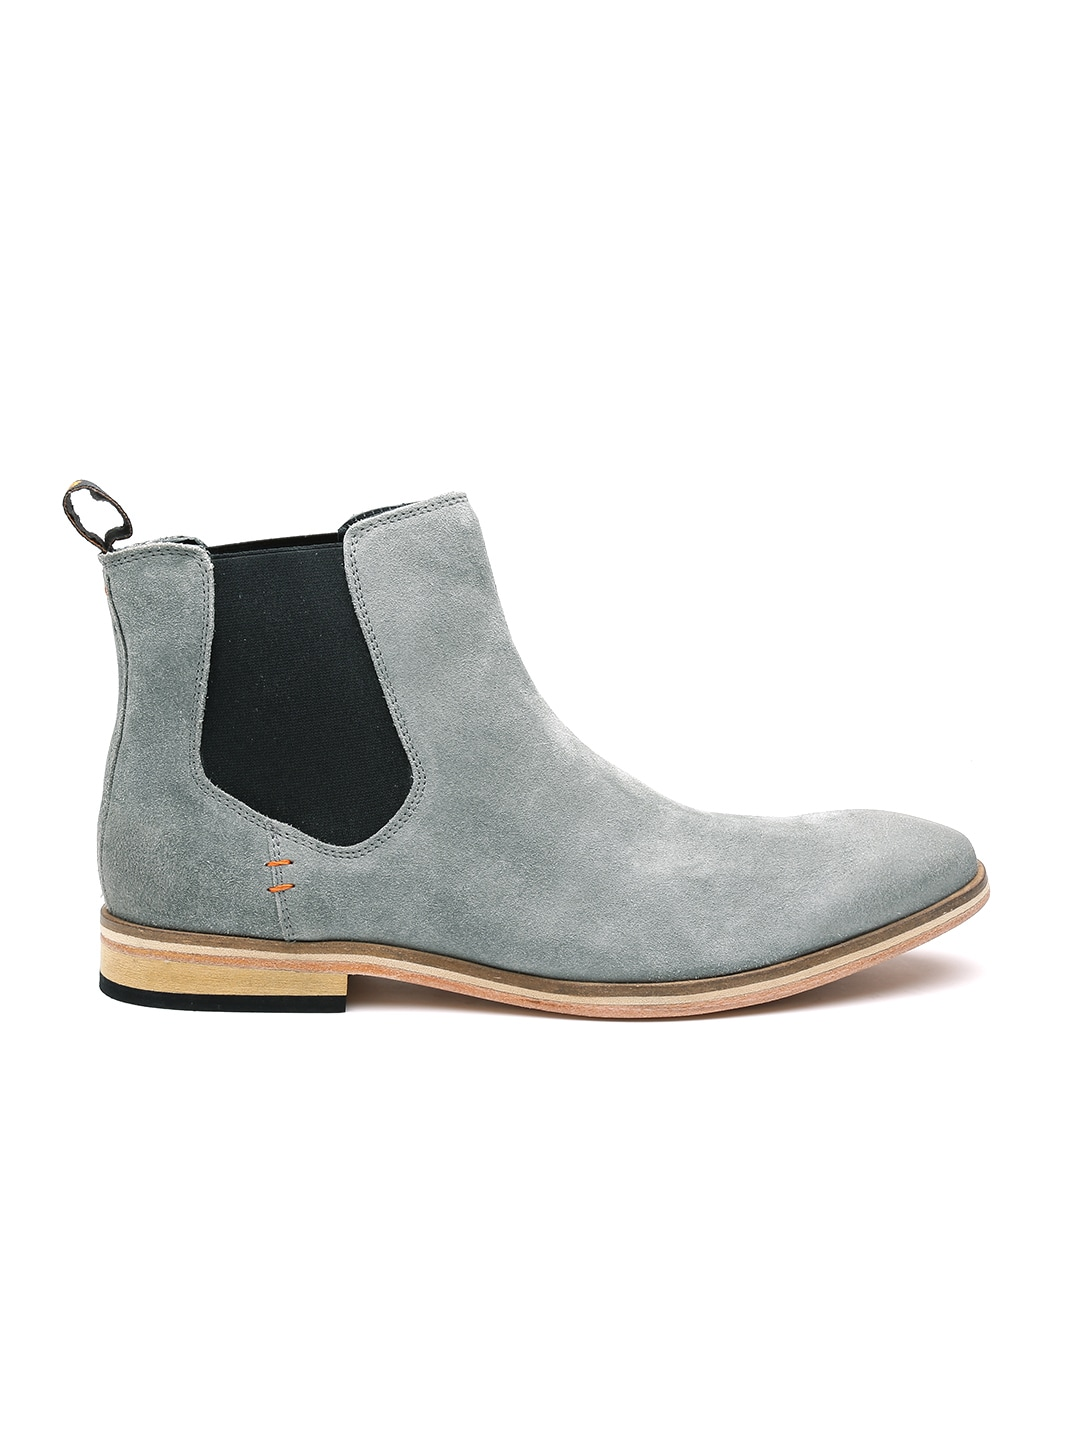 Superdry Mf2ms014f2 Men Grey Suede Chelsea Boots Best Price In